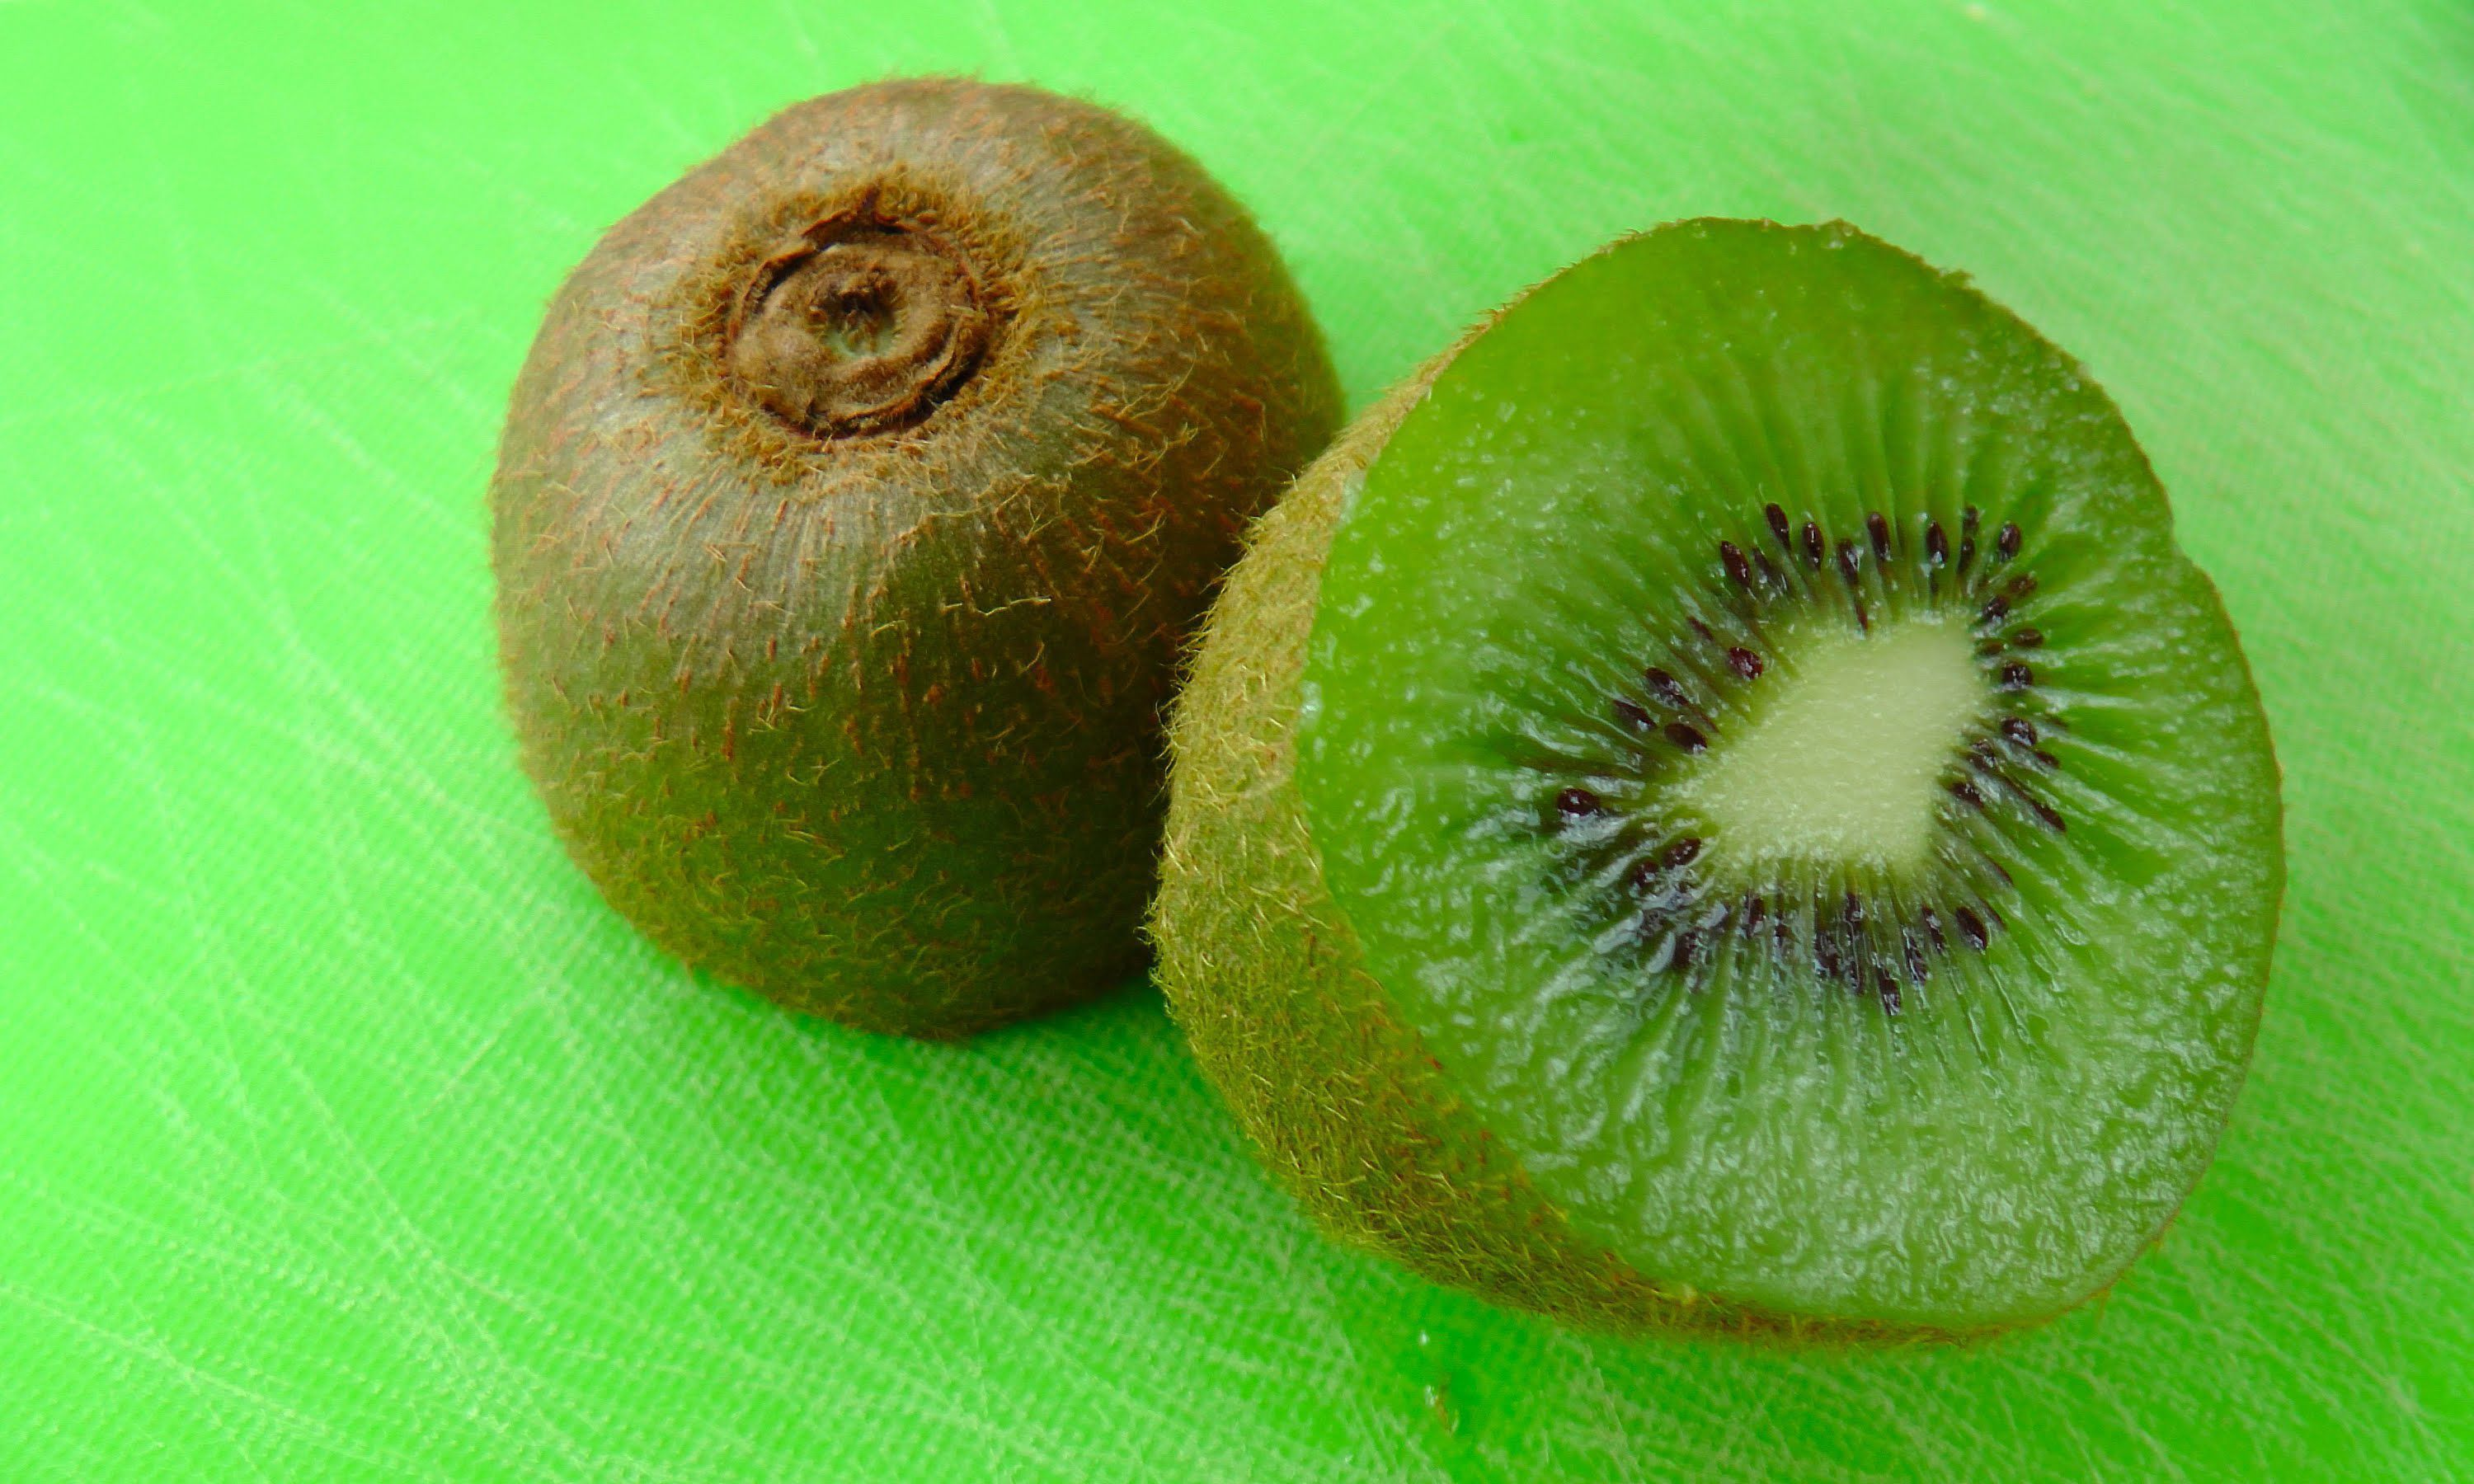 Kiwi For Desktop Background